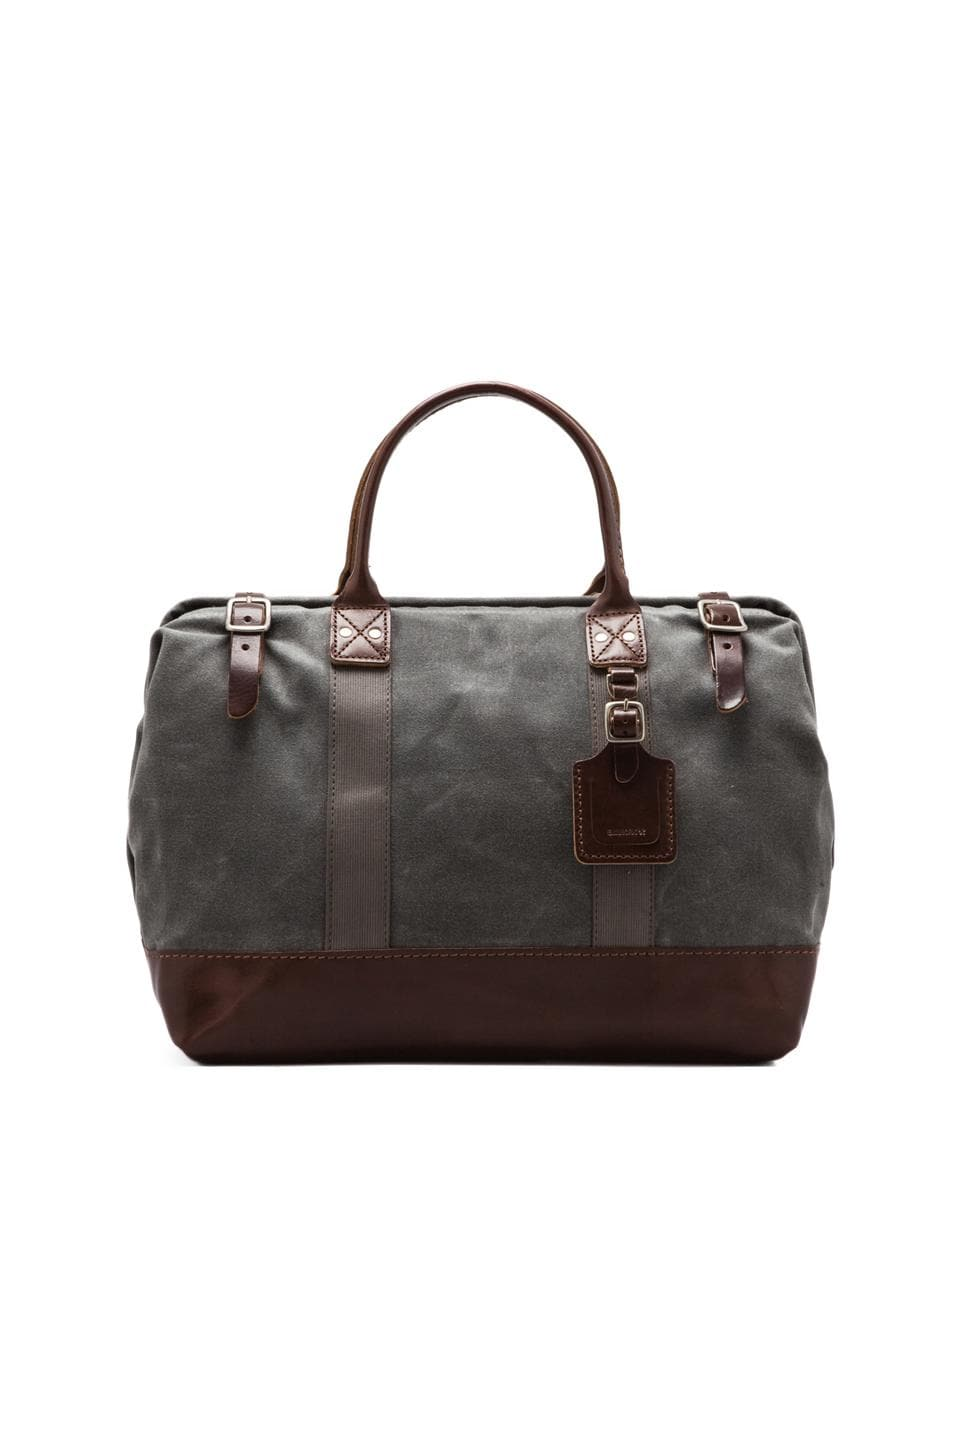 Billykirk No. 165 Medium Carryall in Ash Wax/Brown